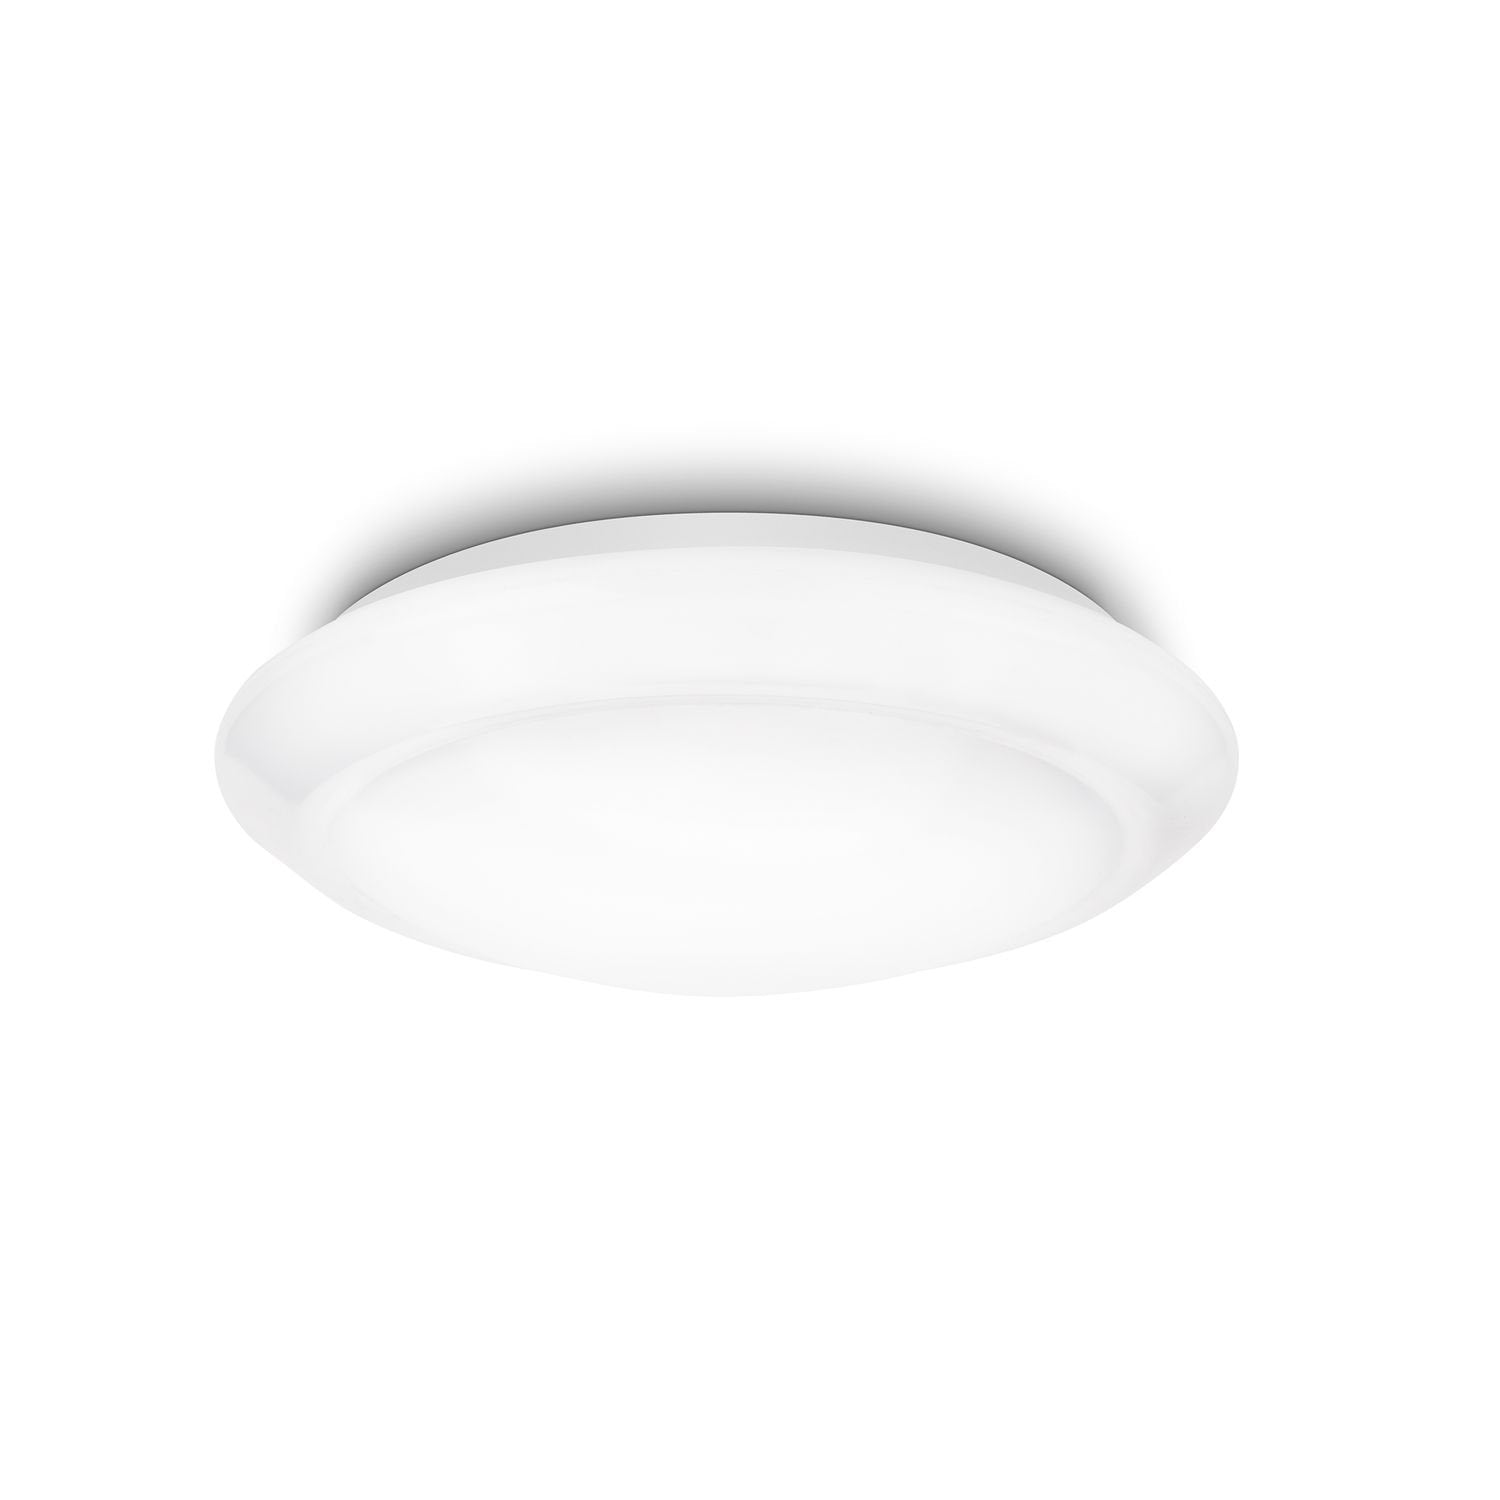 PHILIPS plafonnier lED 333613116 250 mm 600 lm